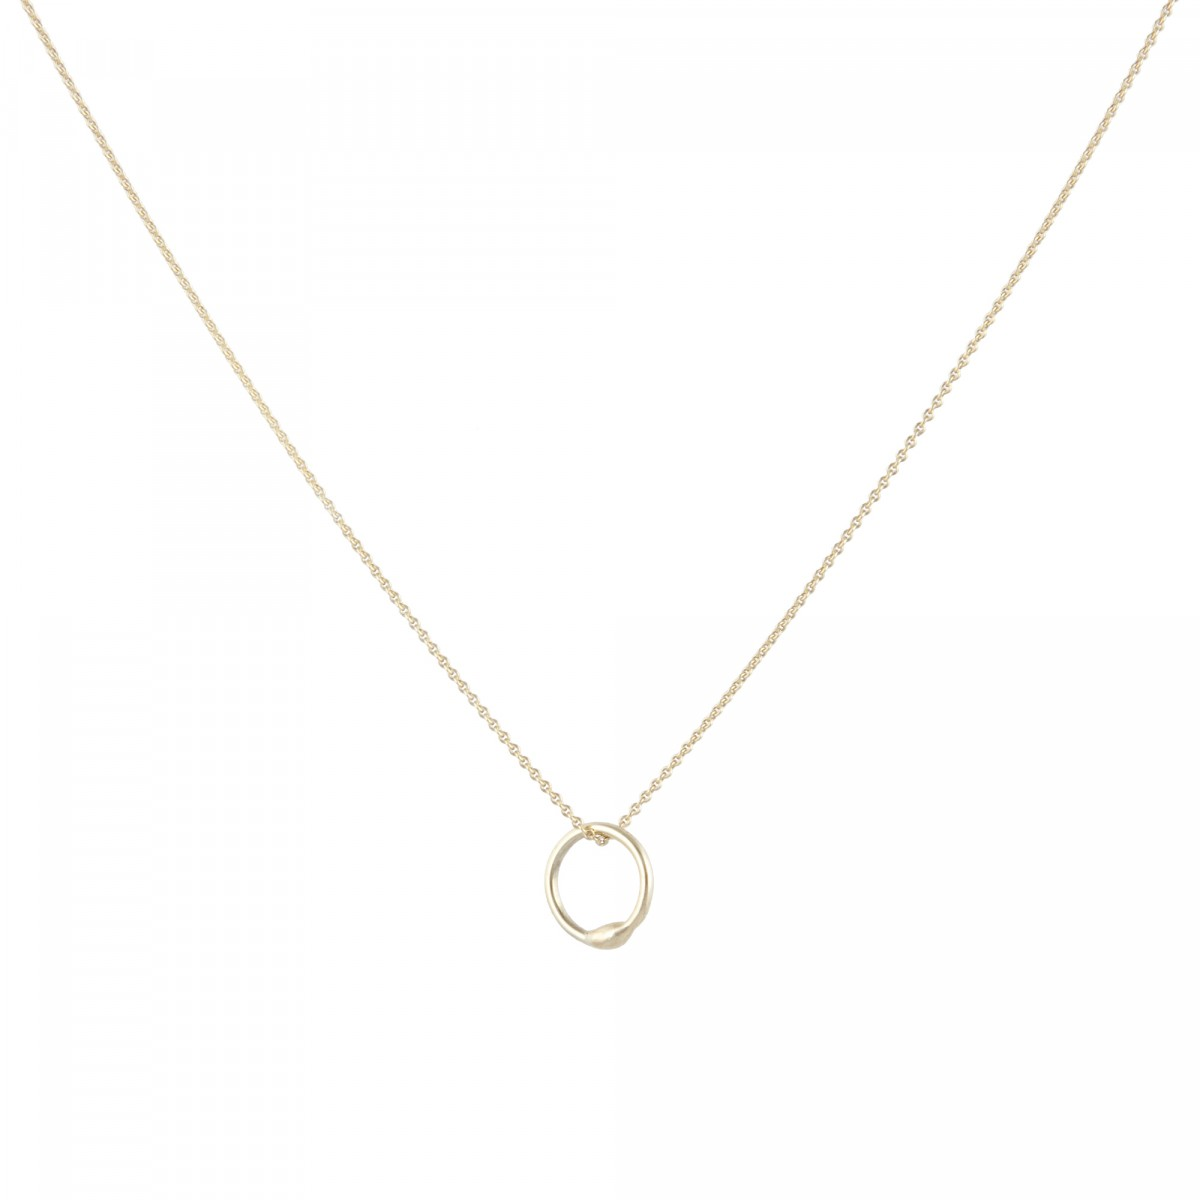 B KREB jewelry - RING necklace Gold